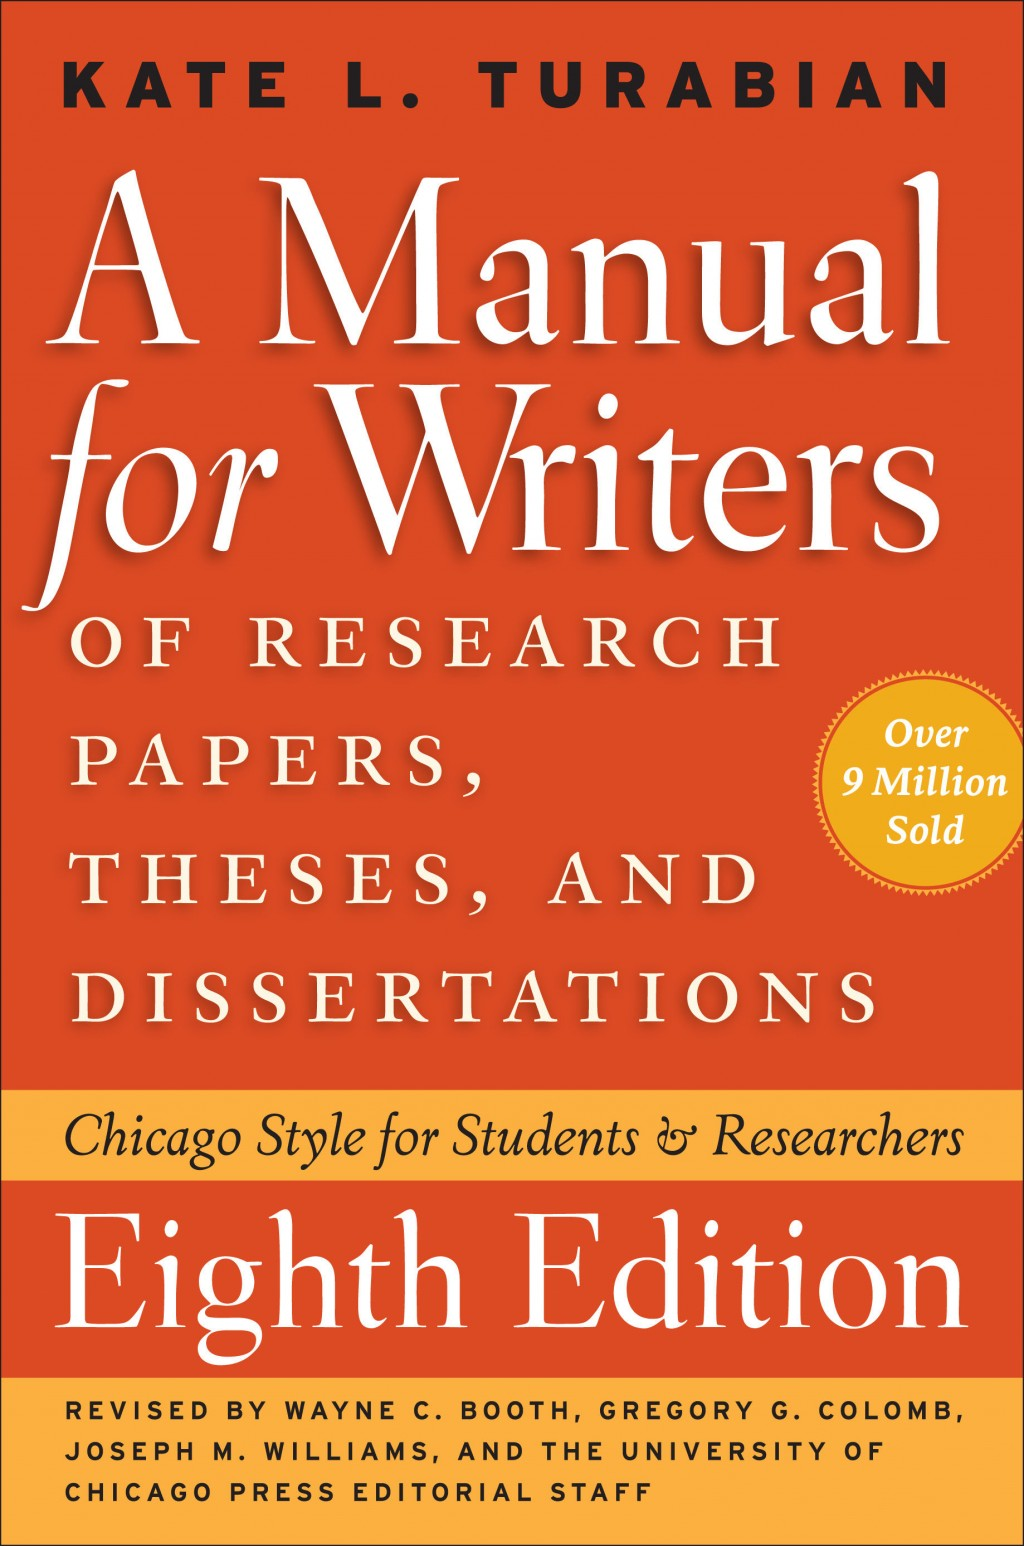 003 Manual For Writers Of Researchs Theses And Dissertations Eighth Edition Uc X Phenomenal A Research Papers Pdf Large